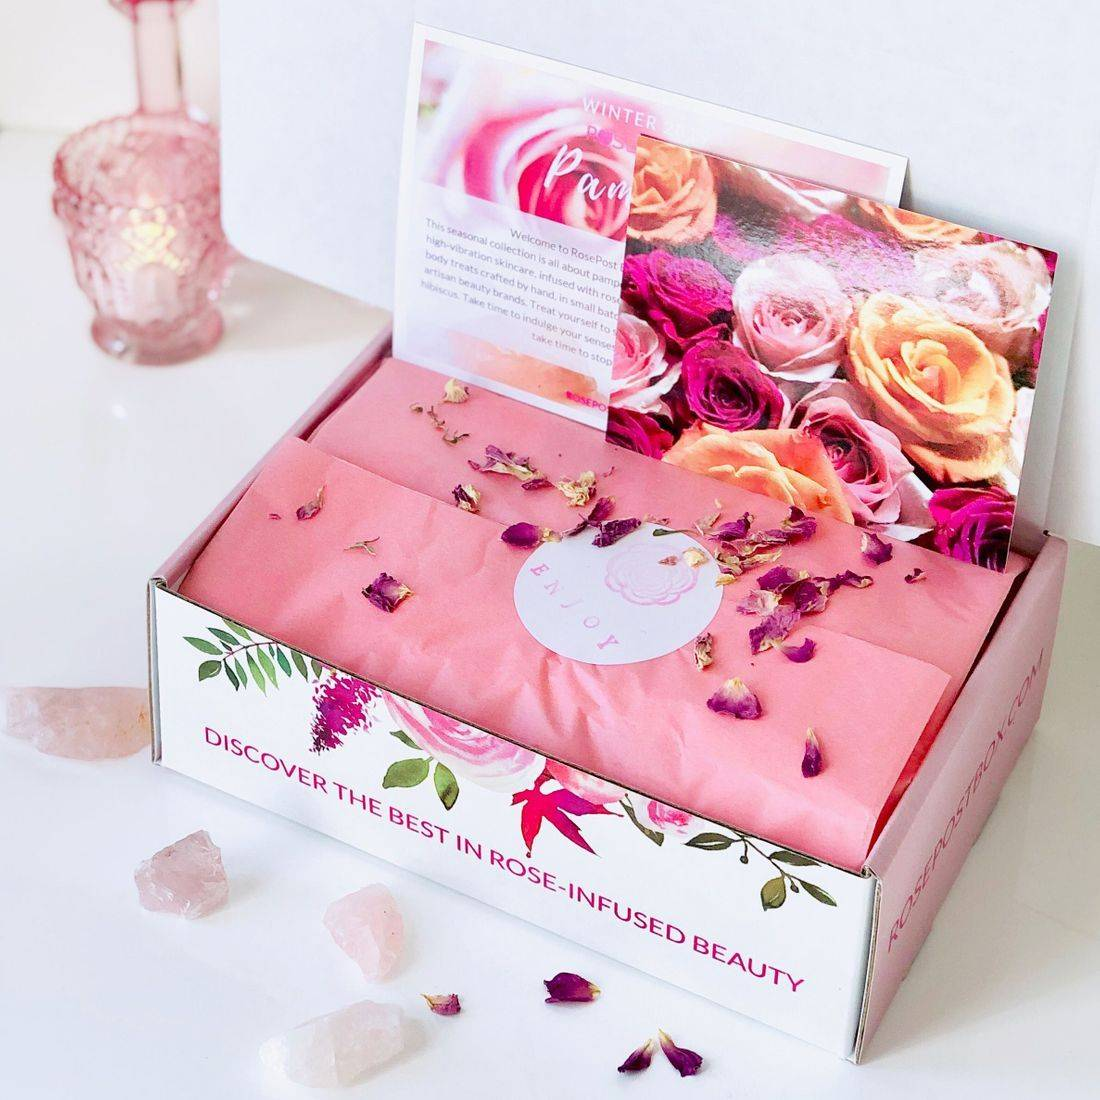 clean rose beauty, best rose skincare, cuticle oil, indie beauty box, eco beauty box, rose-infused skincare, valentine's day clean rose beauty gifts